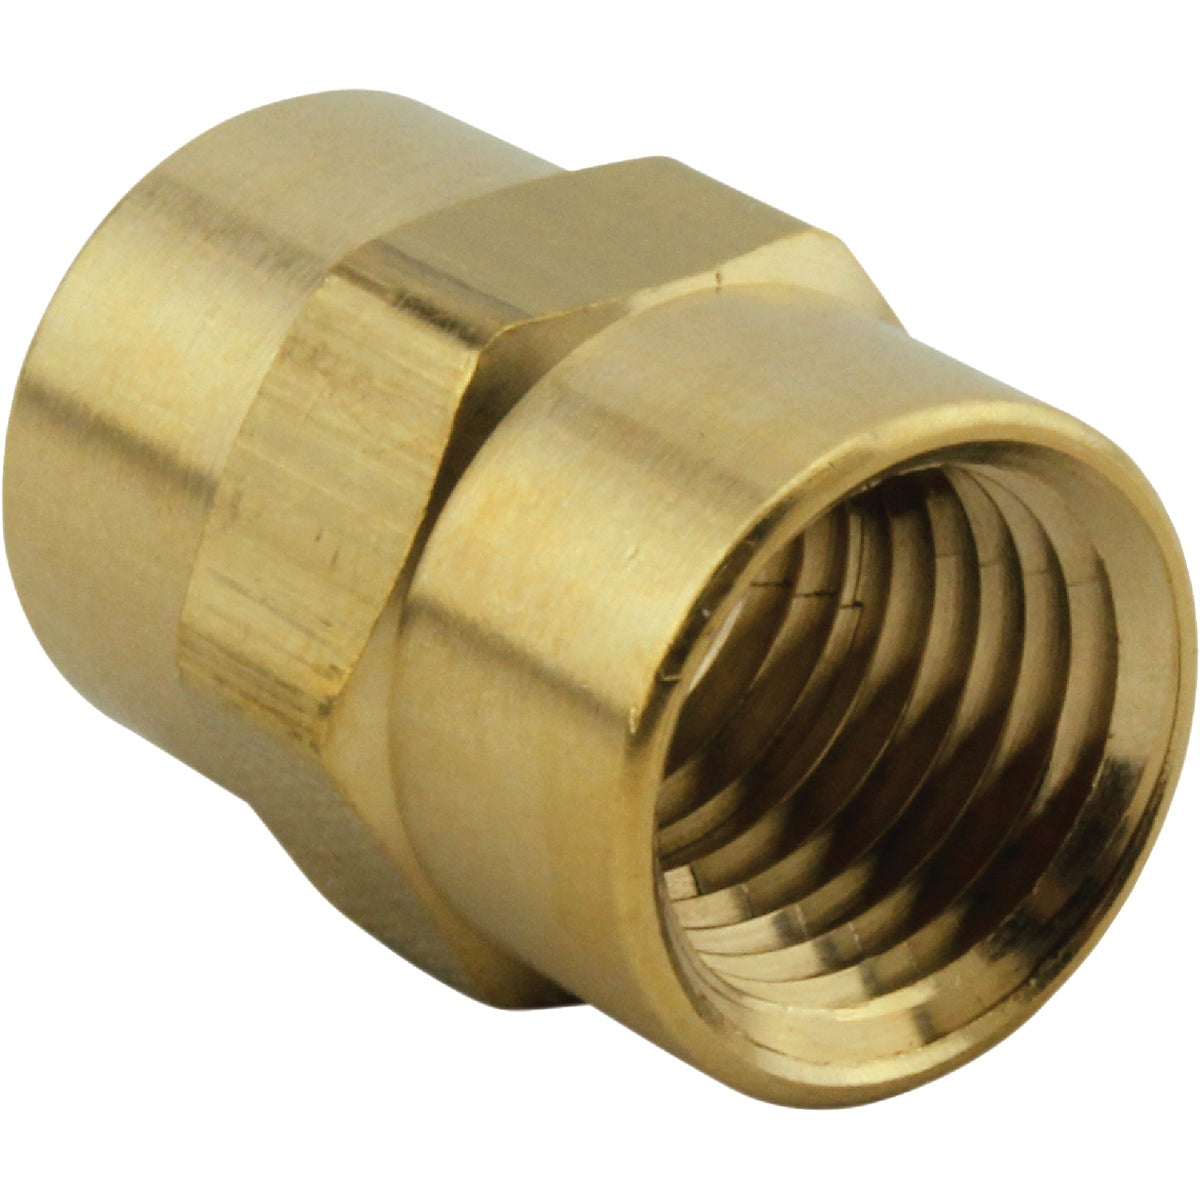 1/4NPT FEML HEX COUPLING - S-643 by Milton Ind/ Incom